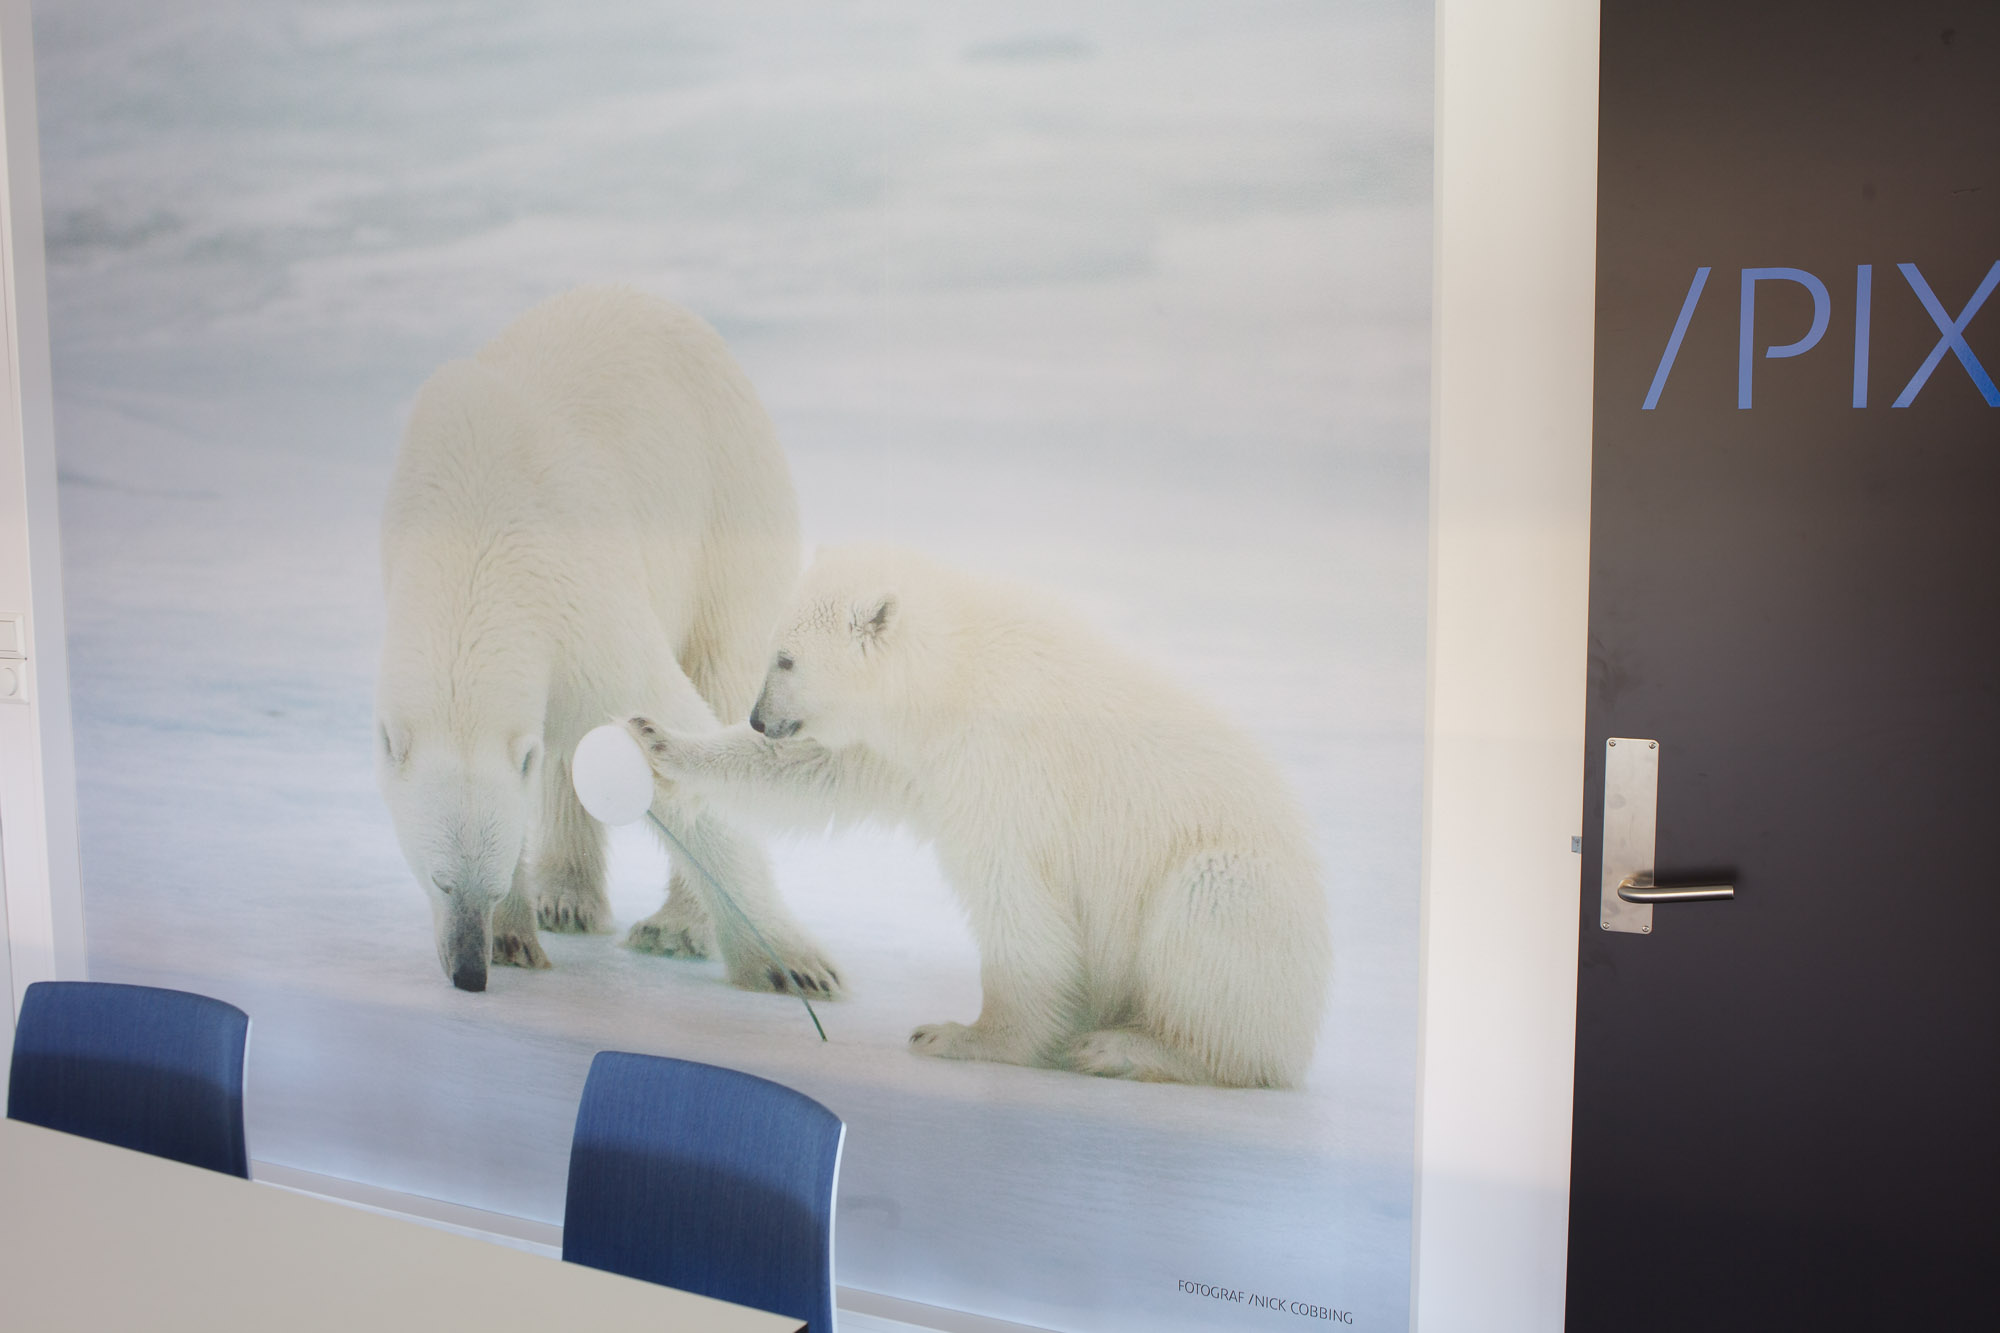 A photograph by Nick Cobbing of two polar bears in Canon Oslo corporate HQ